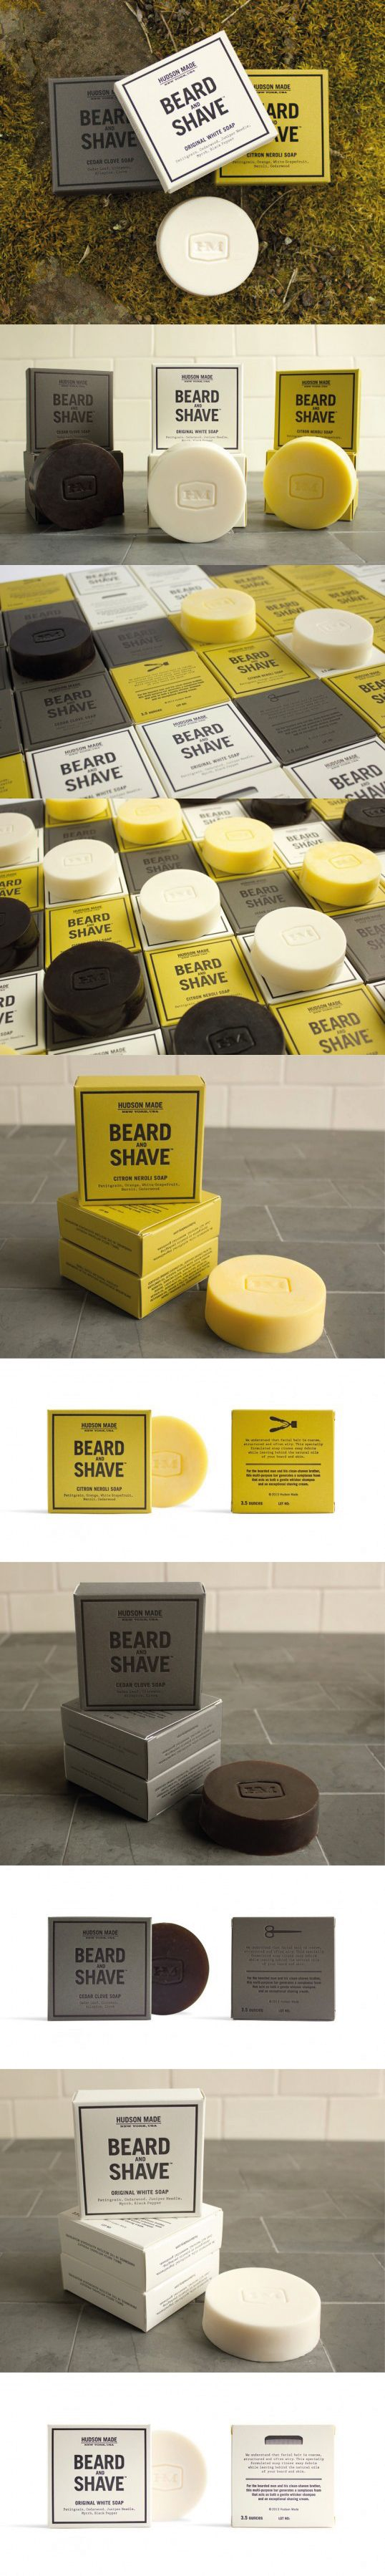 Unique Packaging Design on the Internet, Hudson Made Beard & Shave #packaging #packagingdesign